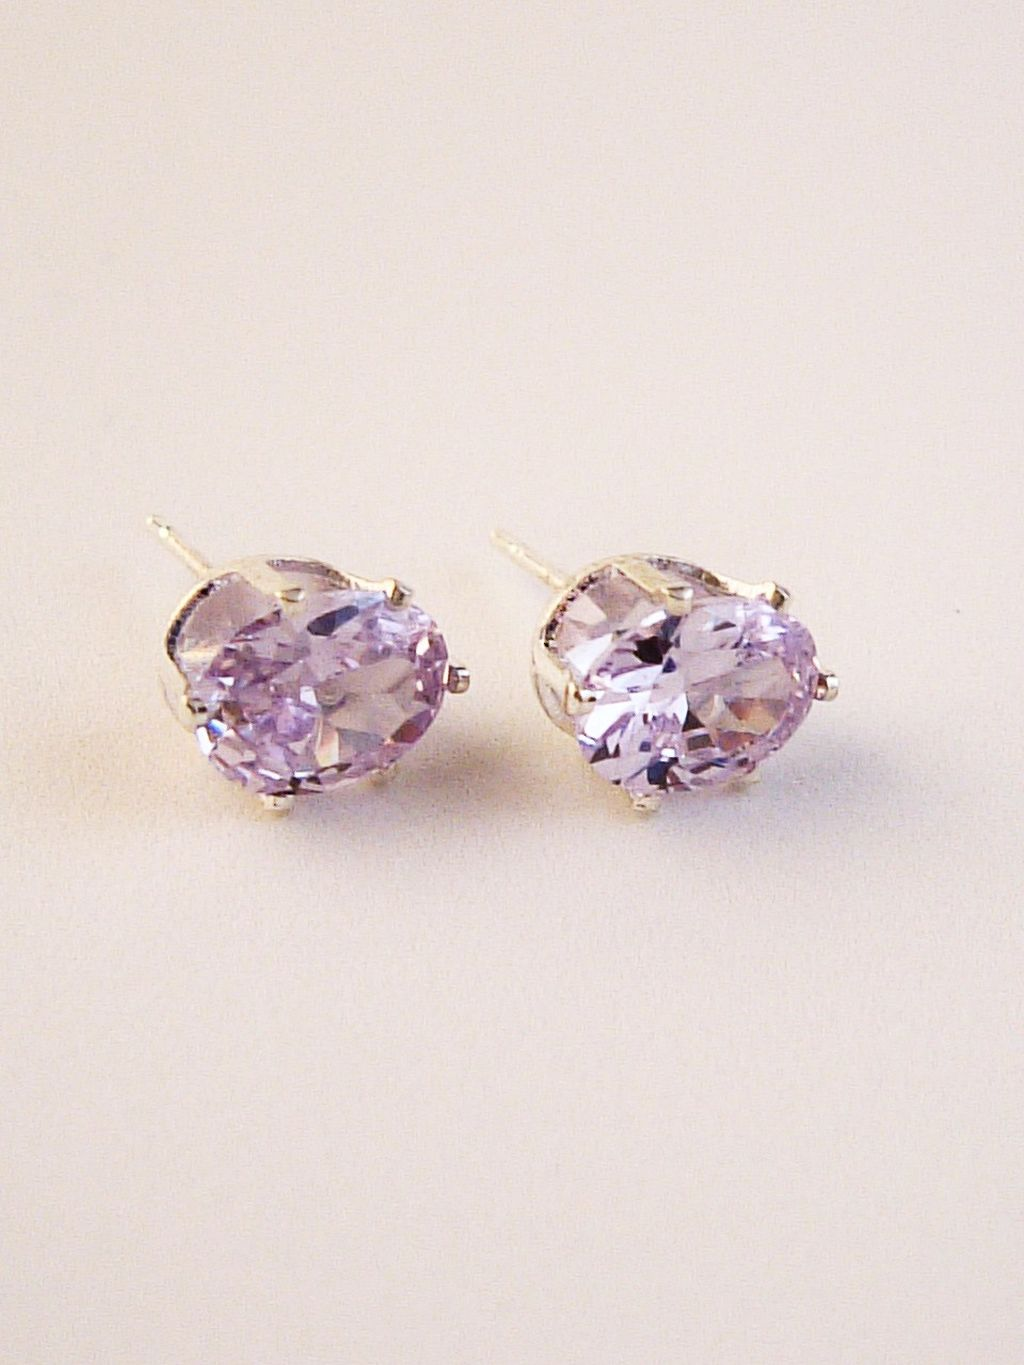 Alexandrite Oval Cut Silver Stud Earrings Genuine CZ Cubic Zirconia